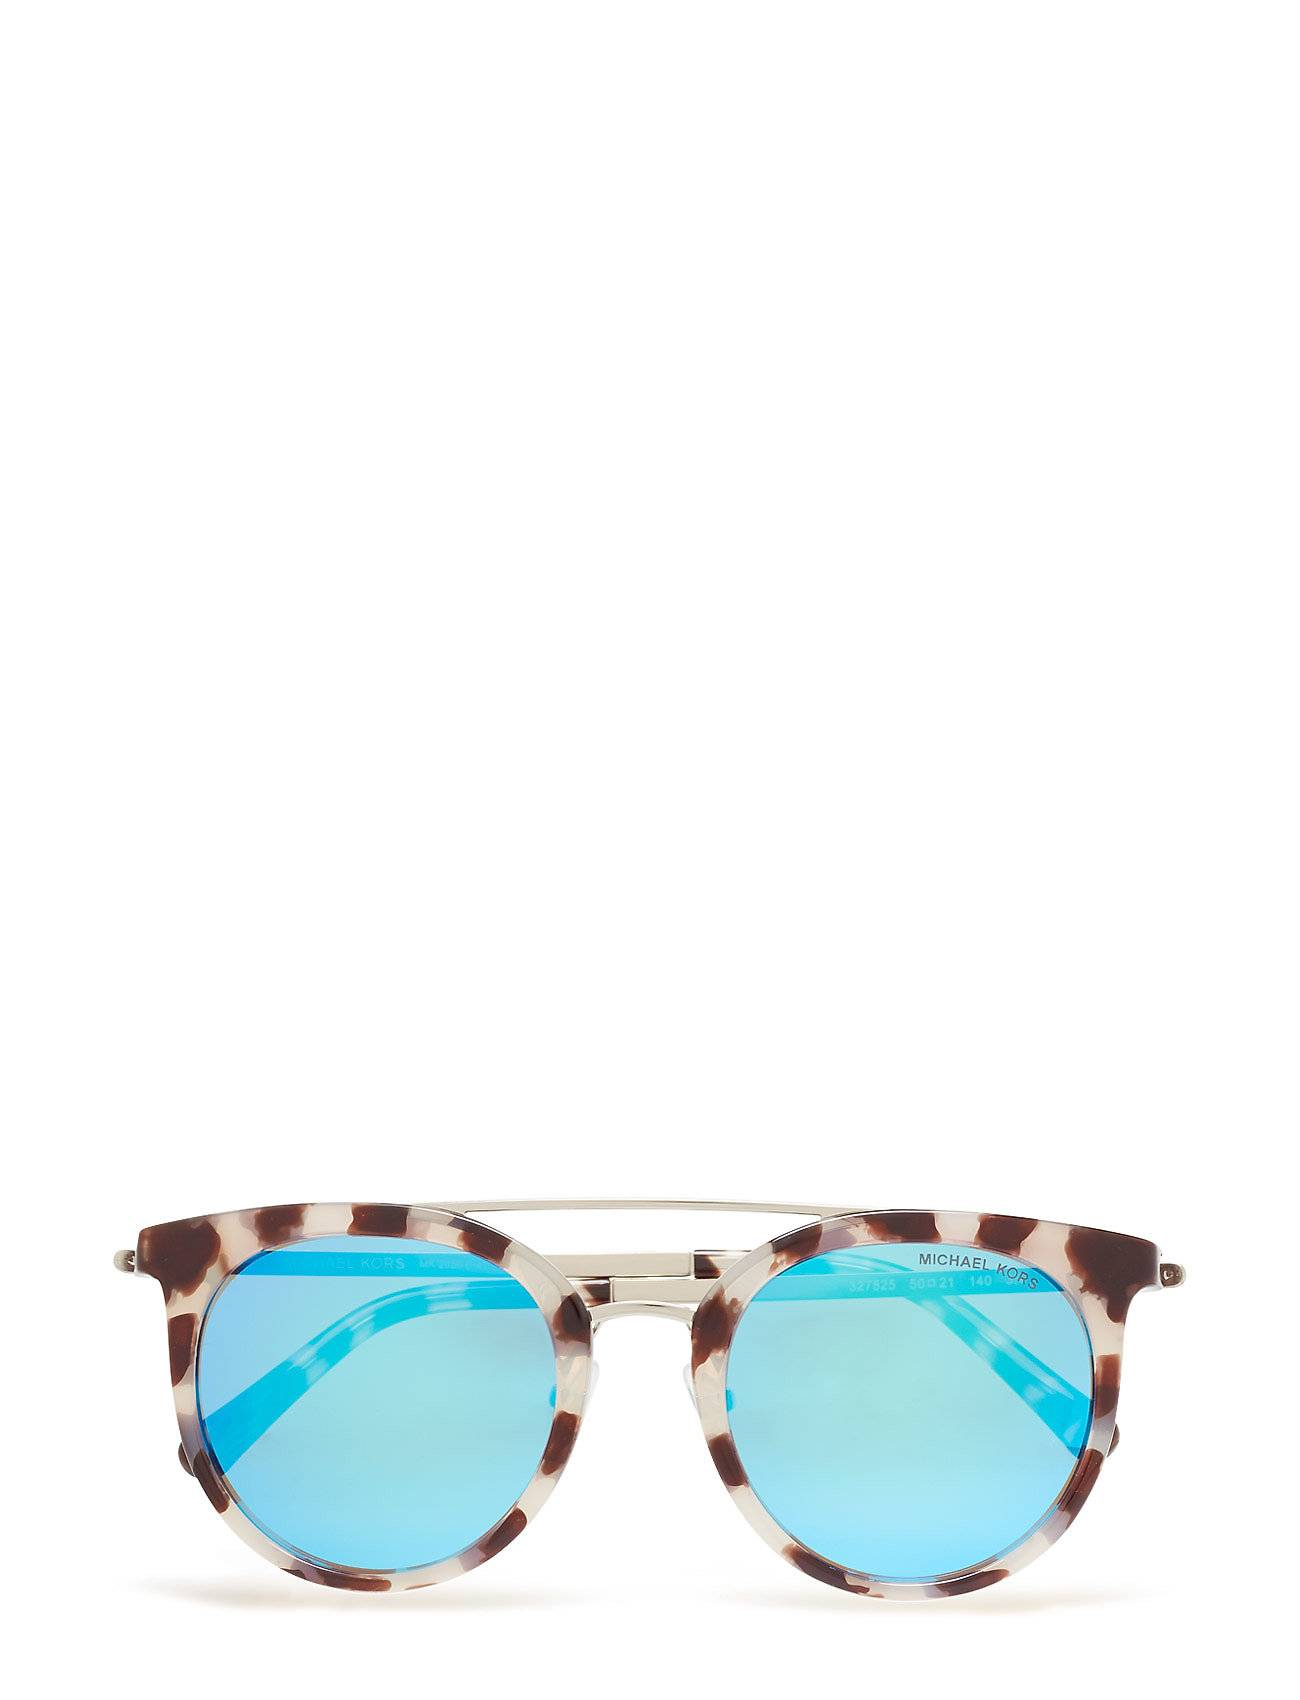 Michael Kors Sunglasses Ila